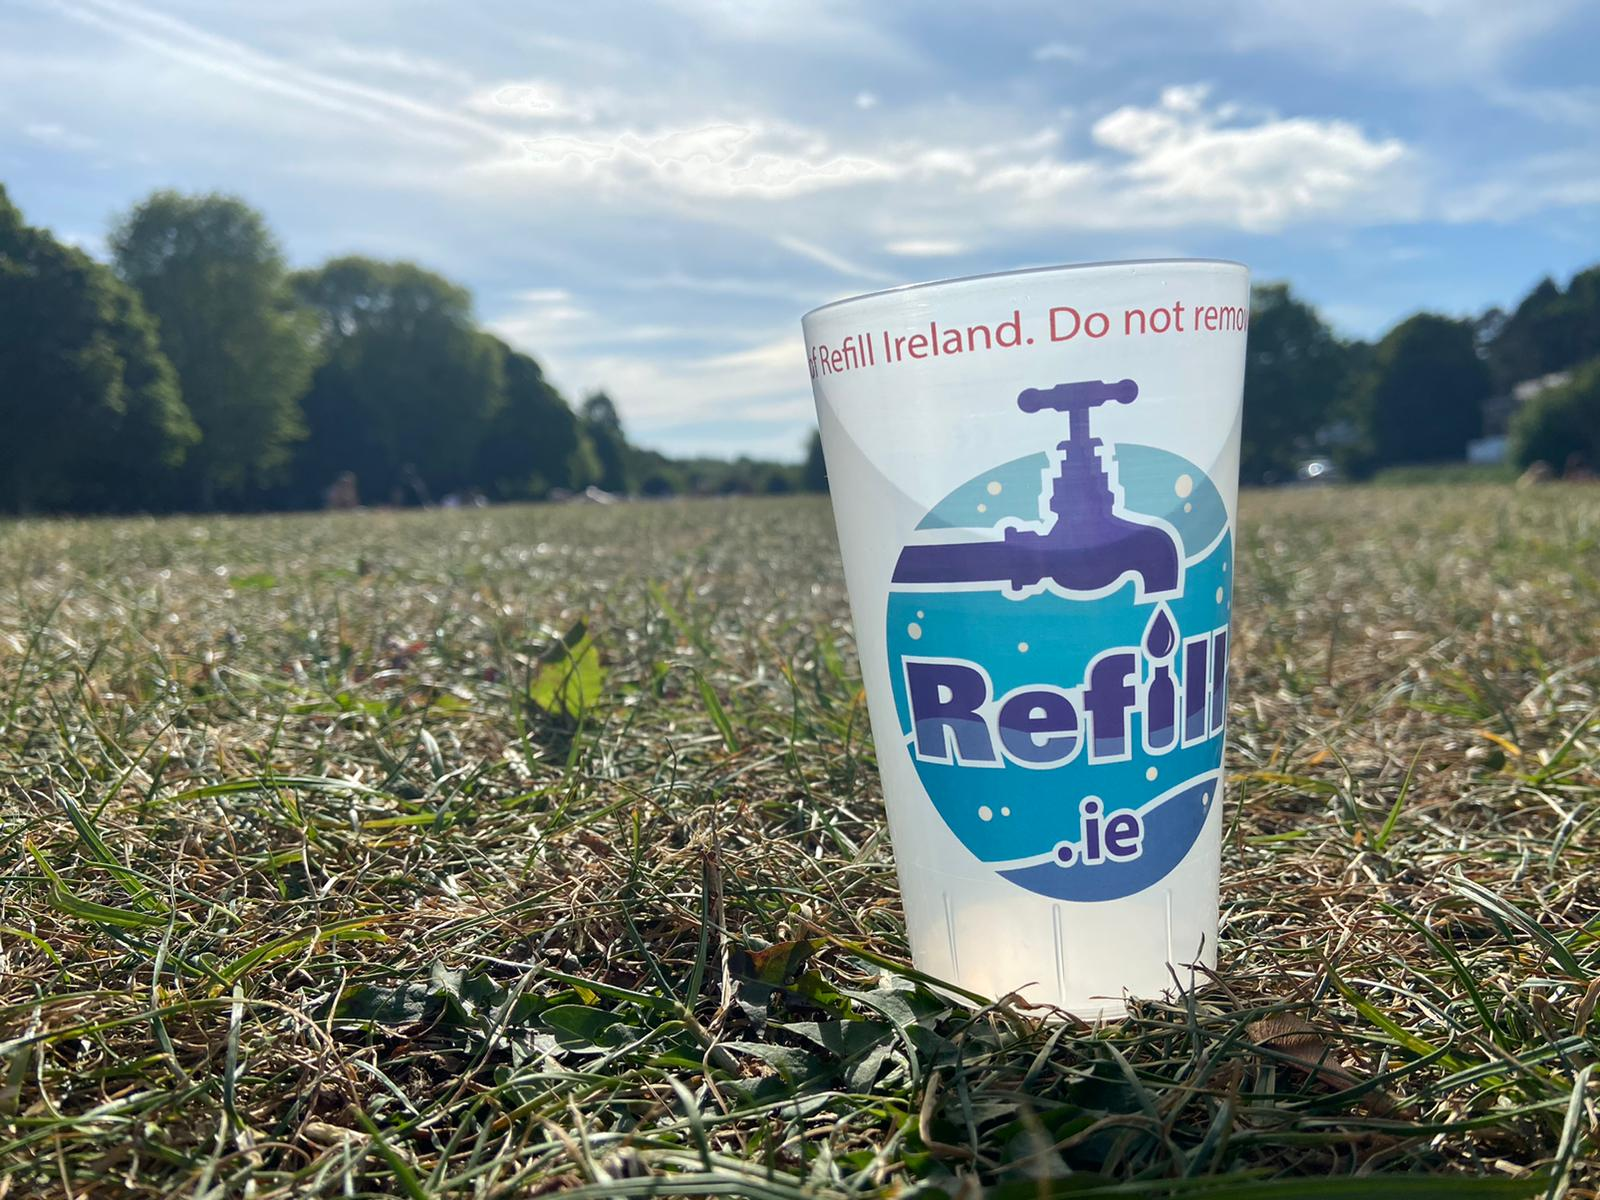 Refill.ie branded reusable cup for drinking water